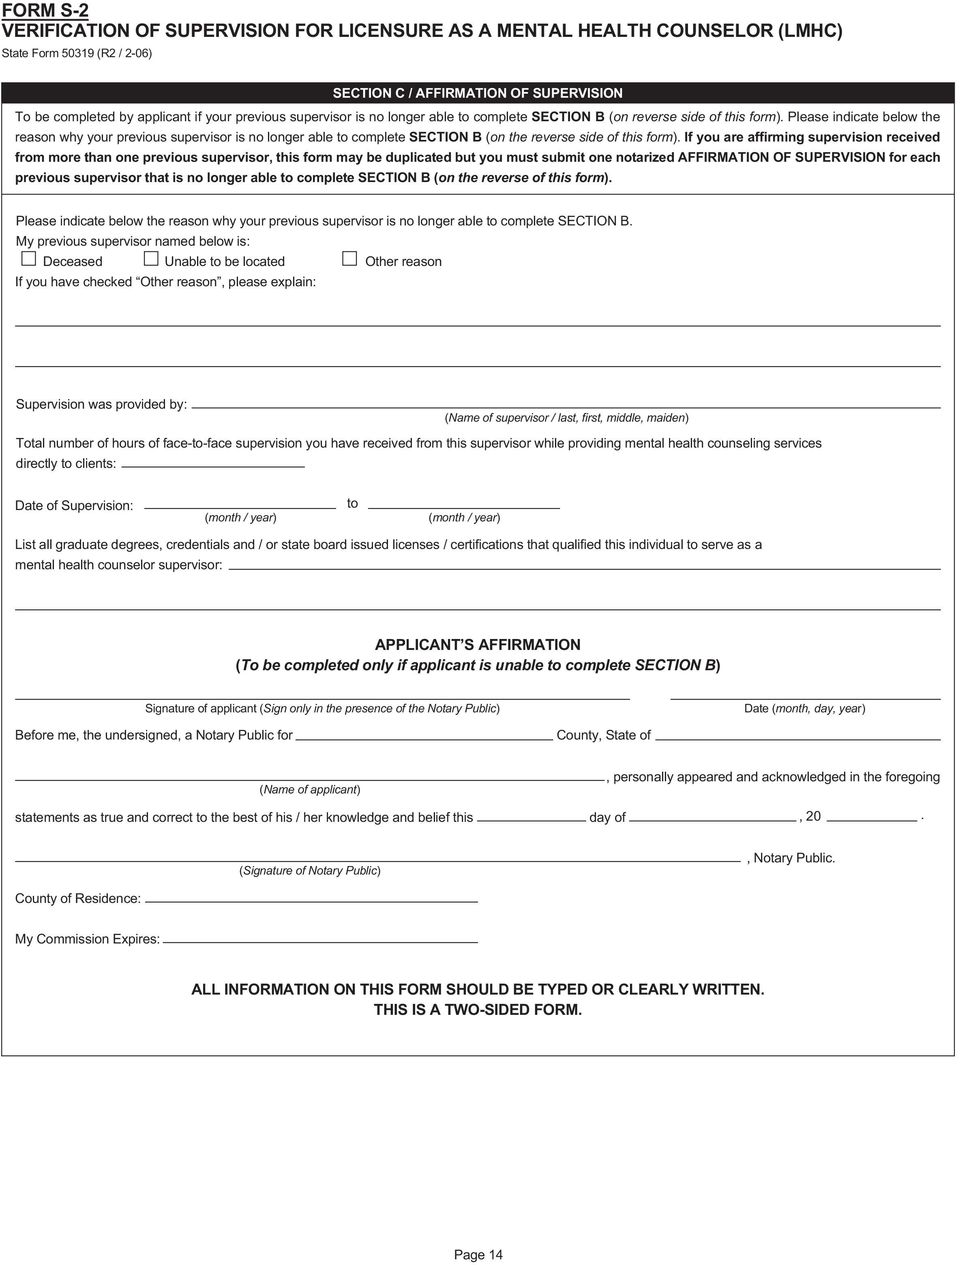 If you are affirming supervision received from more than one previous supervisor, this form may be duplicated but you must submit one notarized AFFIRMATION OF SUPERVISION for each previous supervisor